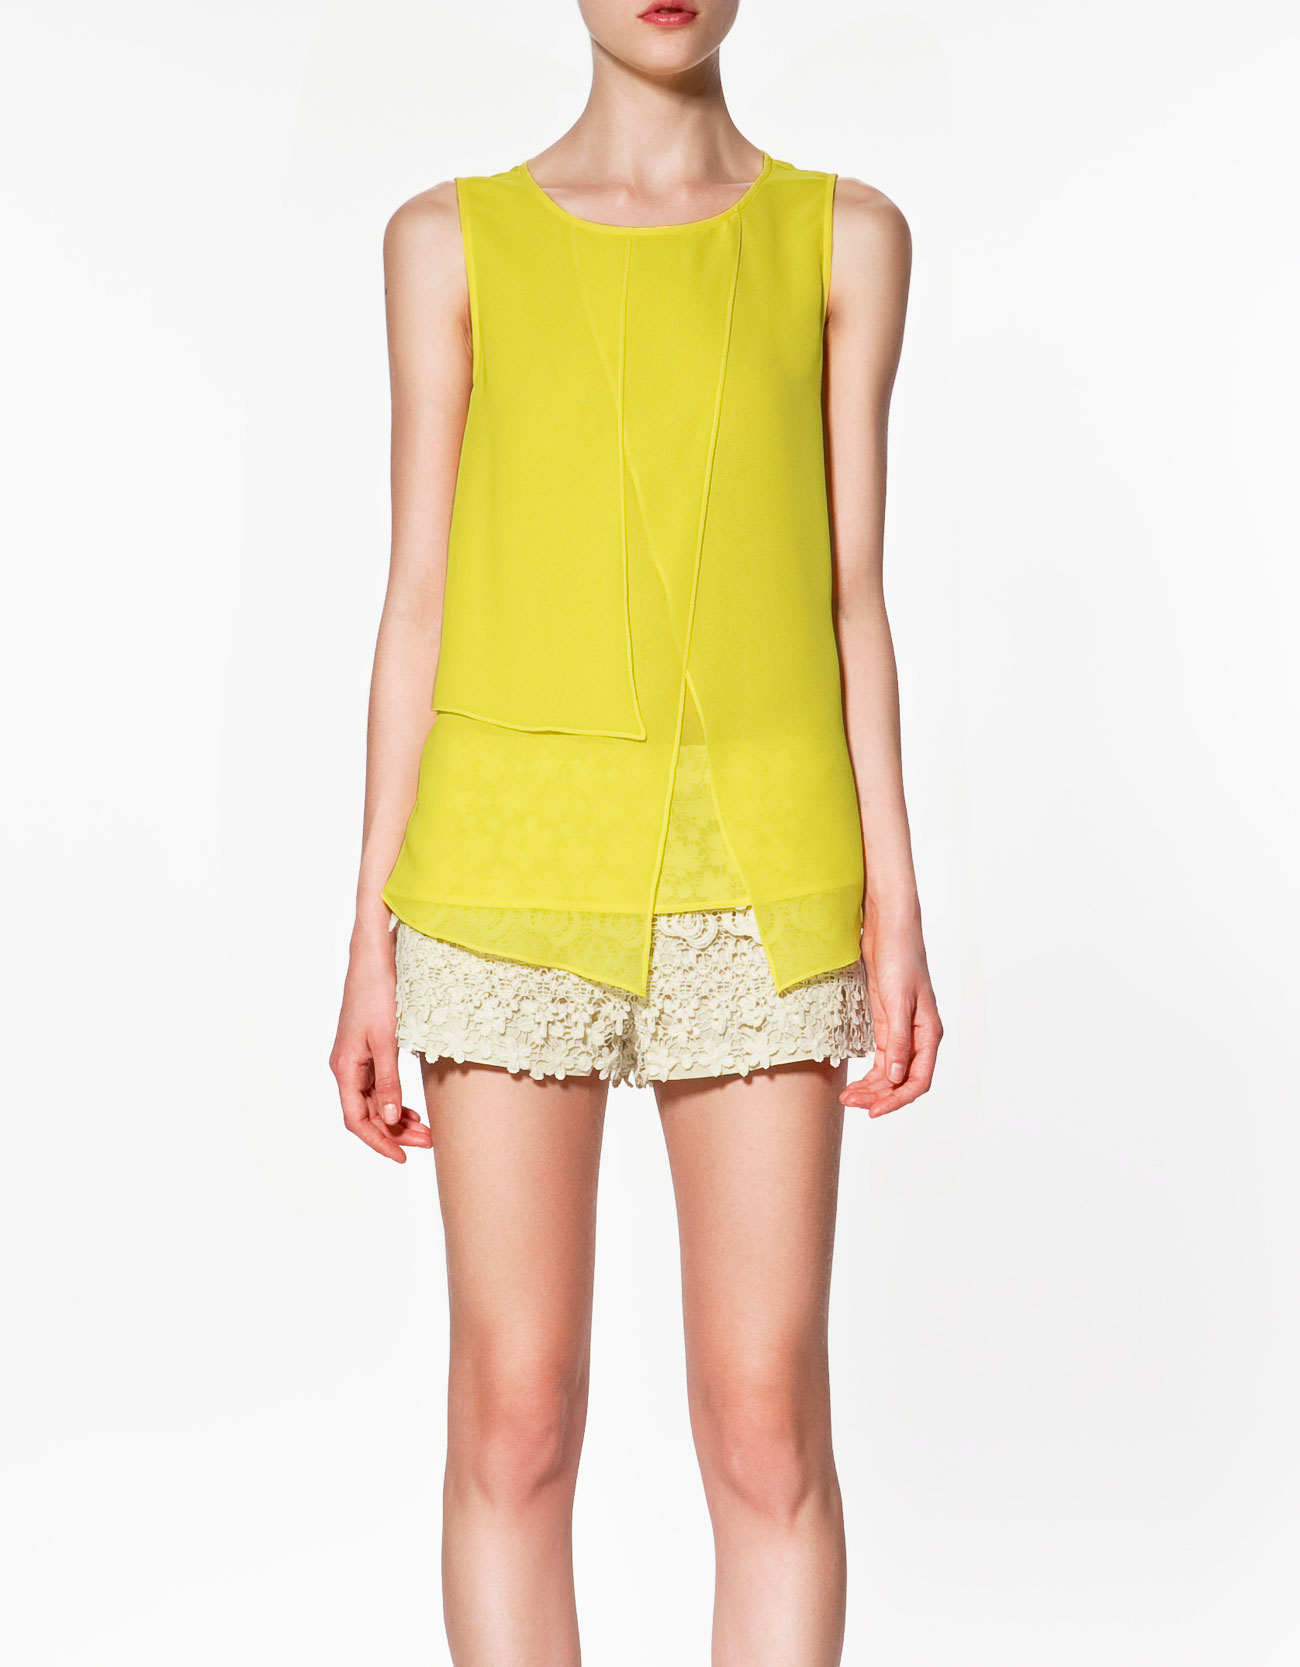 Zara Yellow Lace Blouse 86